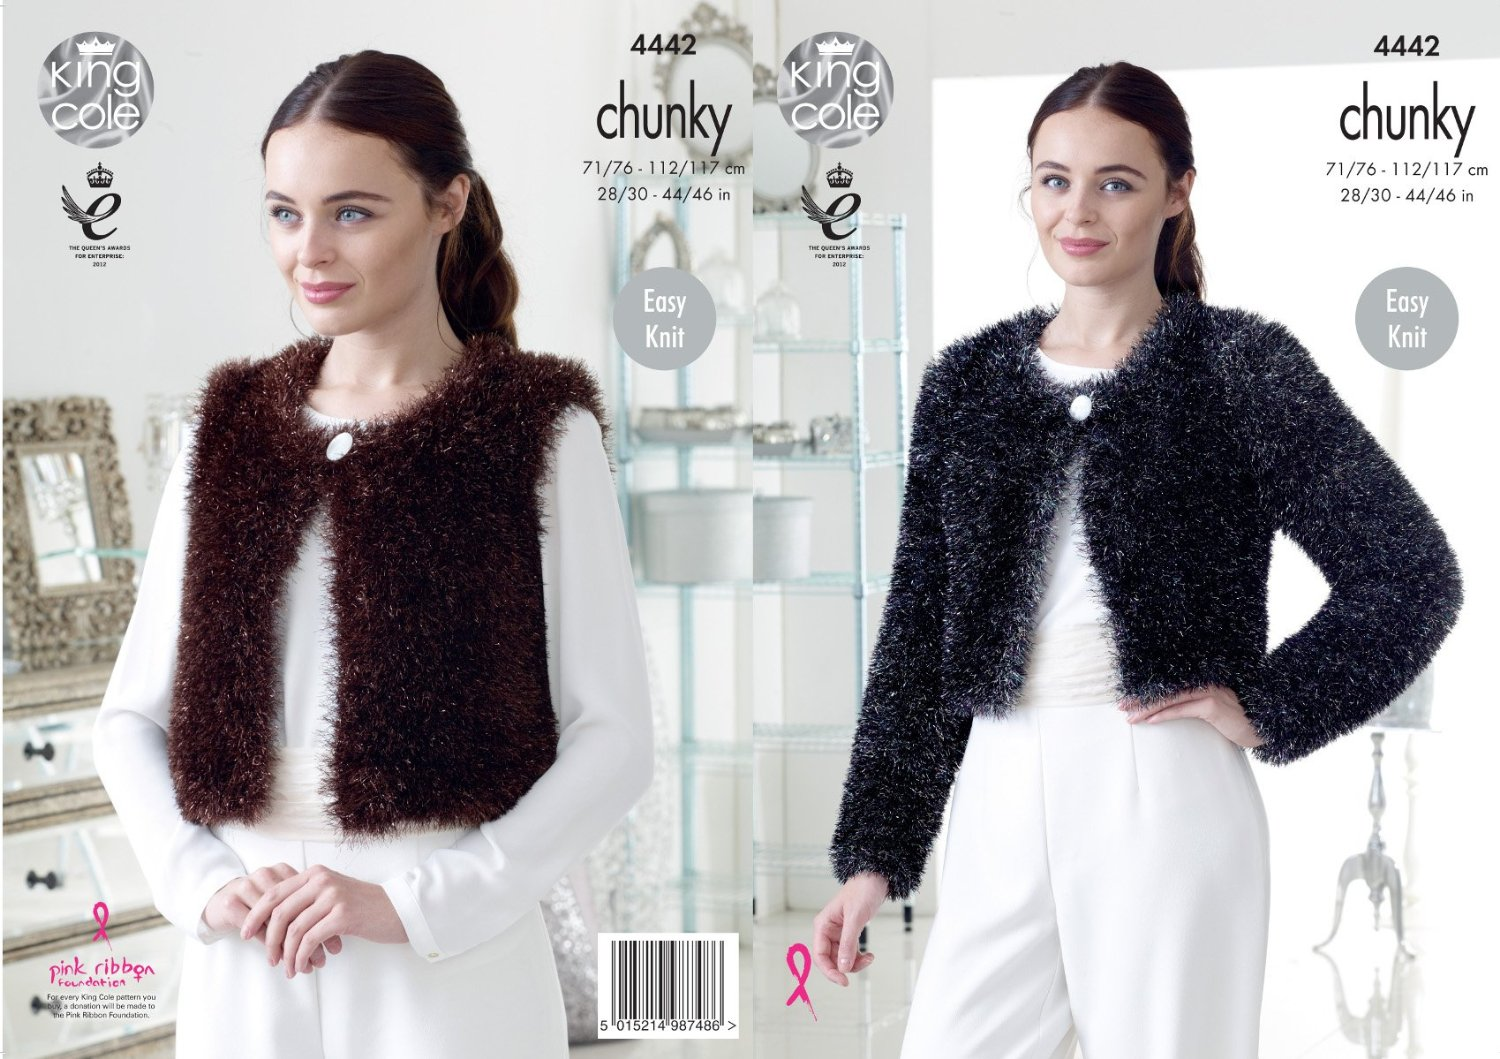 78d43e5c7ead98 Get Quotations · King Cole Ladies Tinsel Chunky Knitting Pattern Womens  Easy Knit V   Round Neck Cardigans (